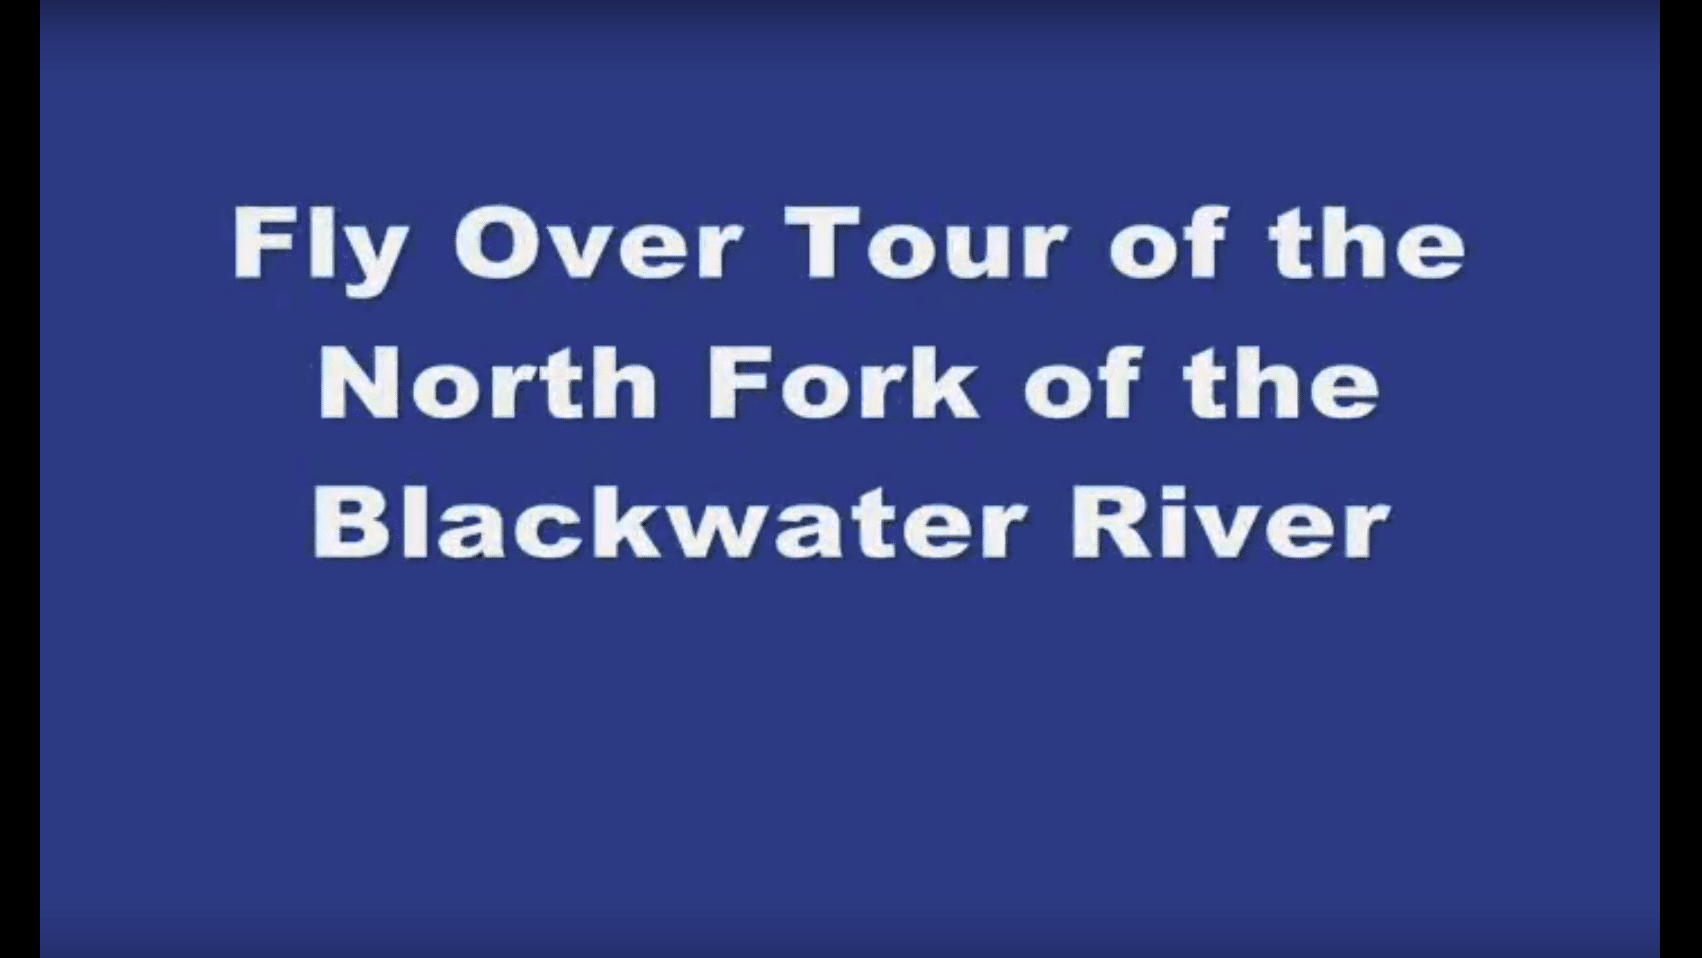 graphic reading fly over tour of the North Fork of the Blackwater River